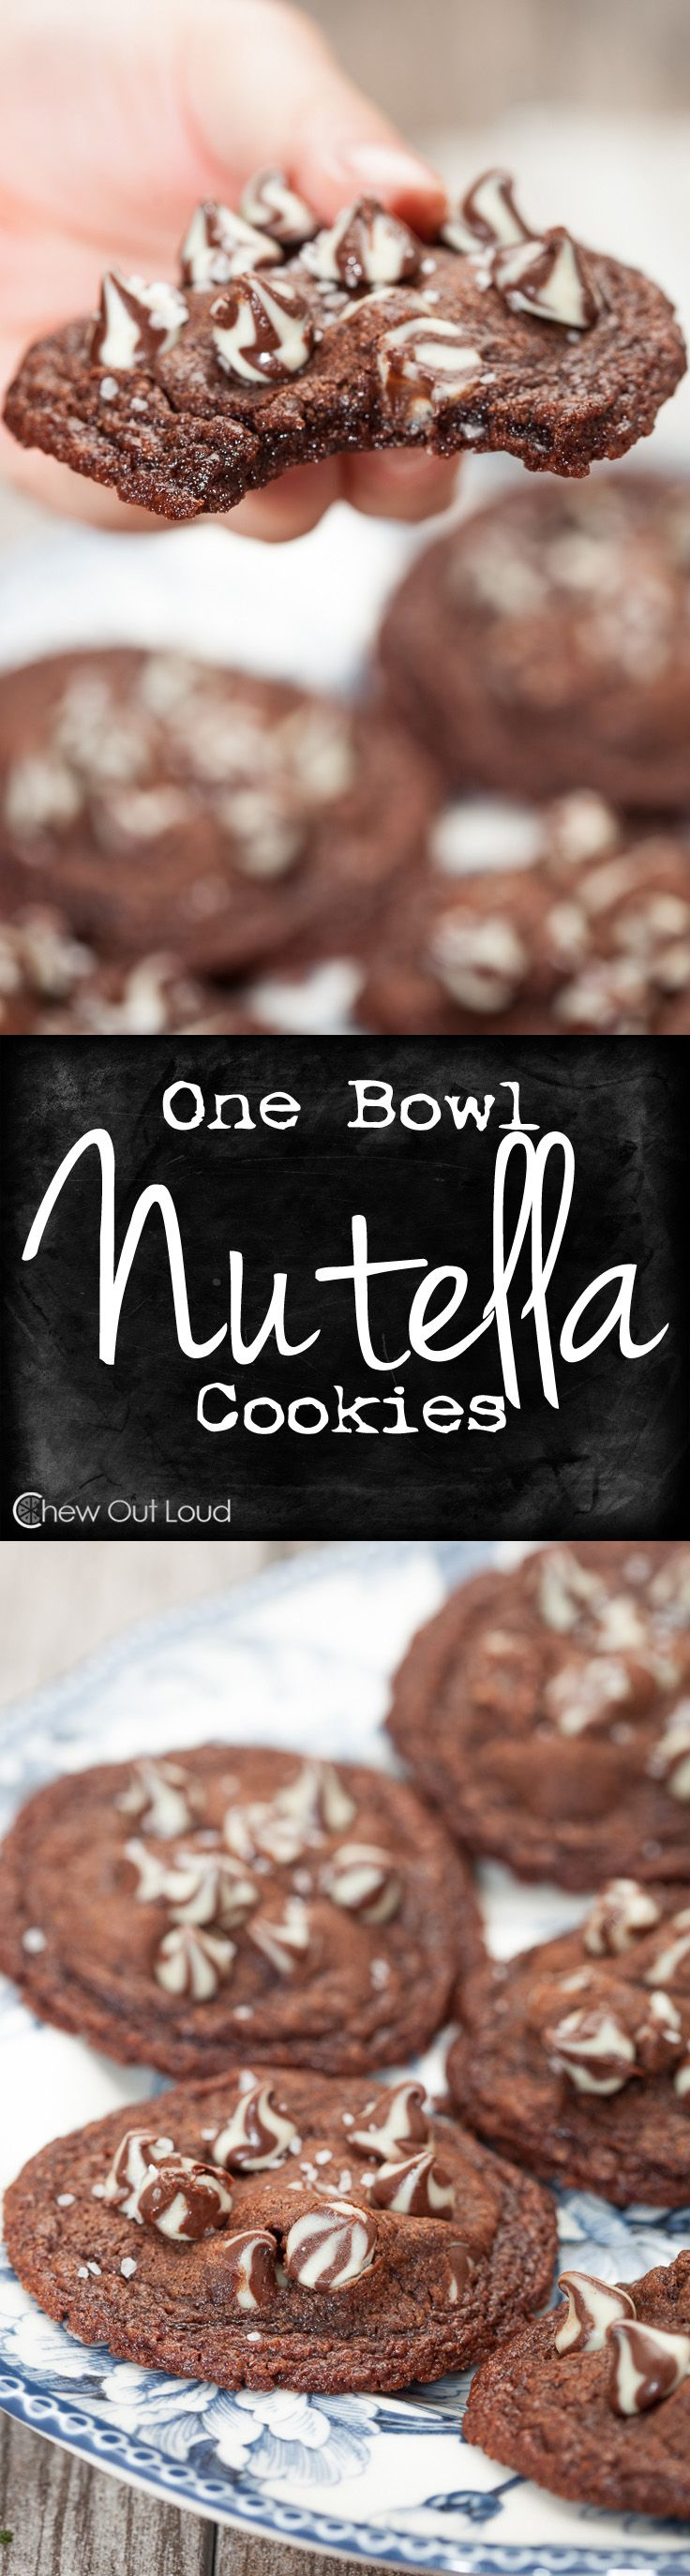 One Bowl Nutella Cookies - Only 1 bowl and 6 ingredients. Super chewy, fudgy centers and crispy edges. Nutella bliss. #recipe #dessert